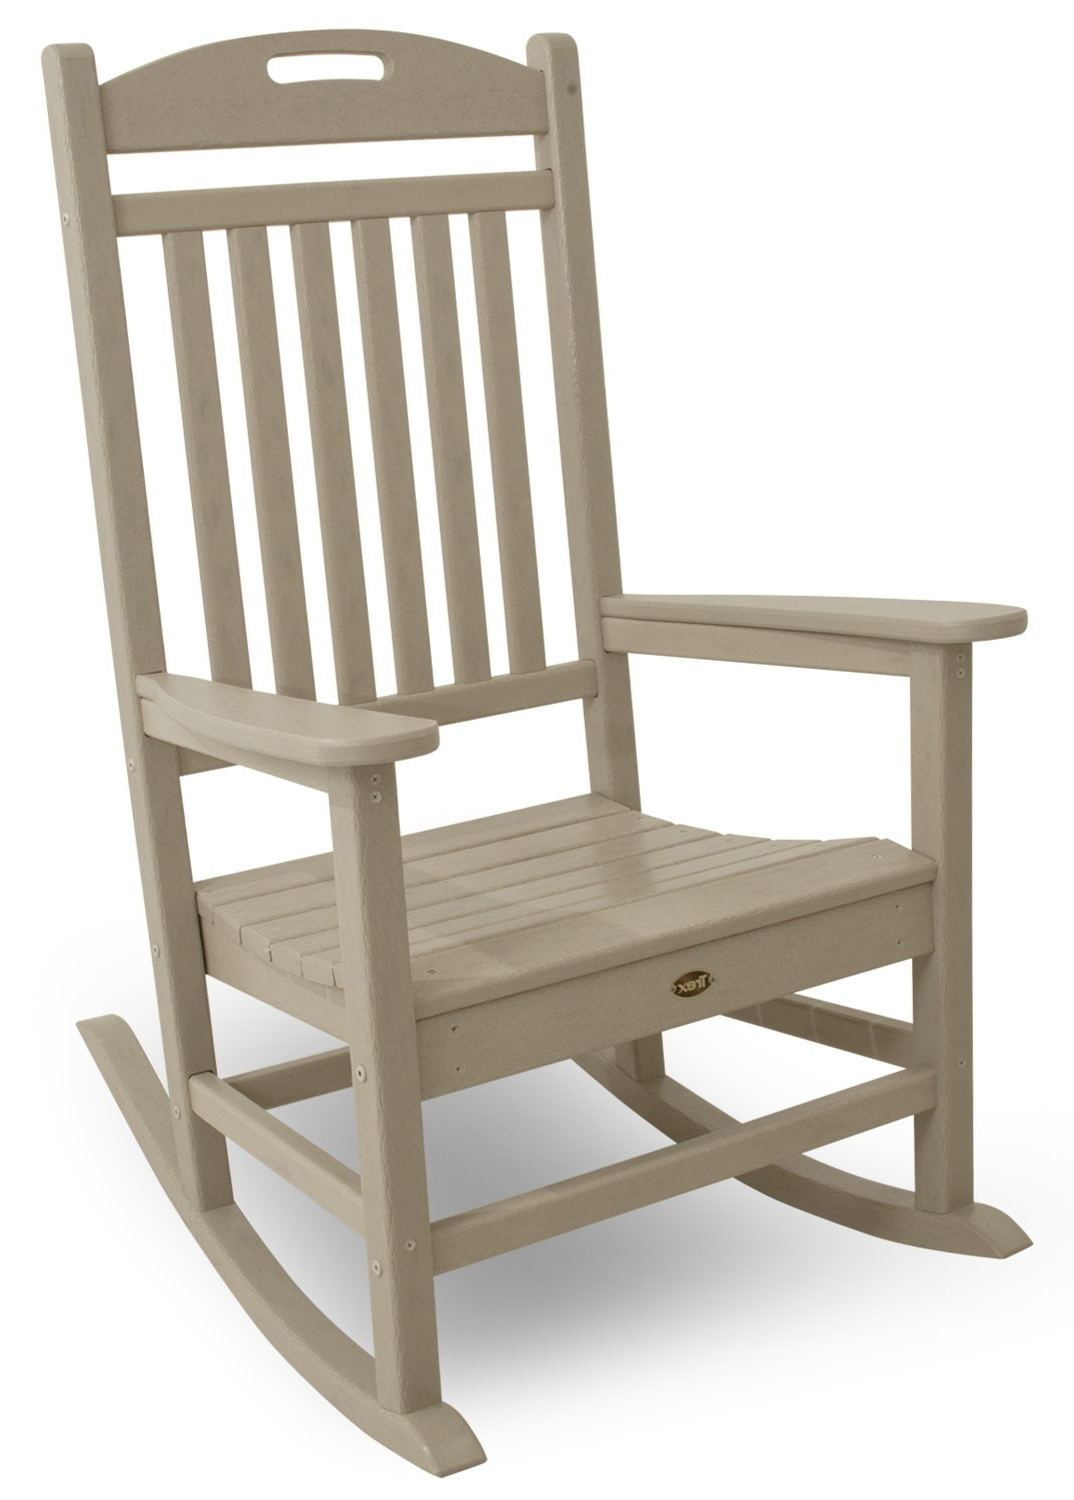 Famous Yacht Club Rocking Chair Intended For Patio Rocking Chairs (View 3 of 20)